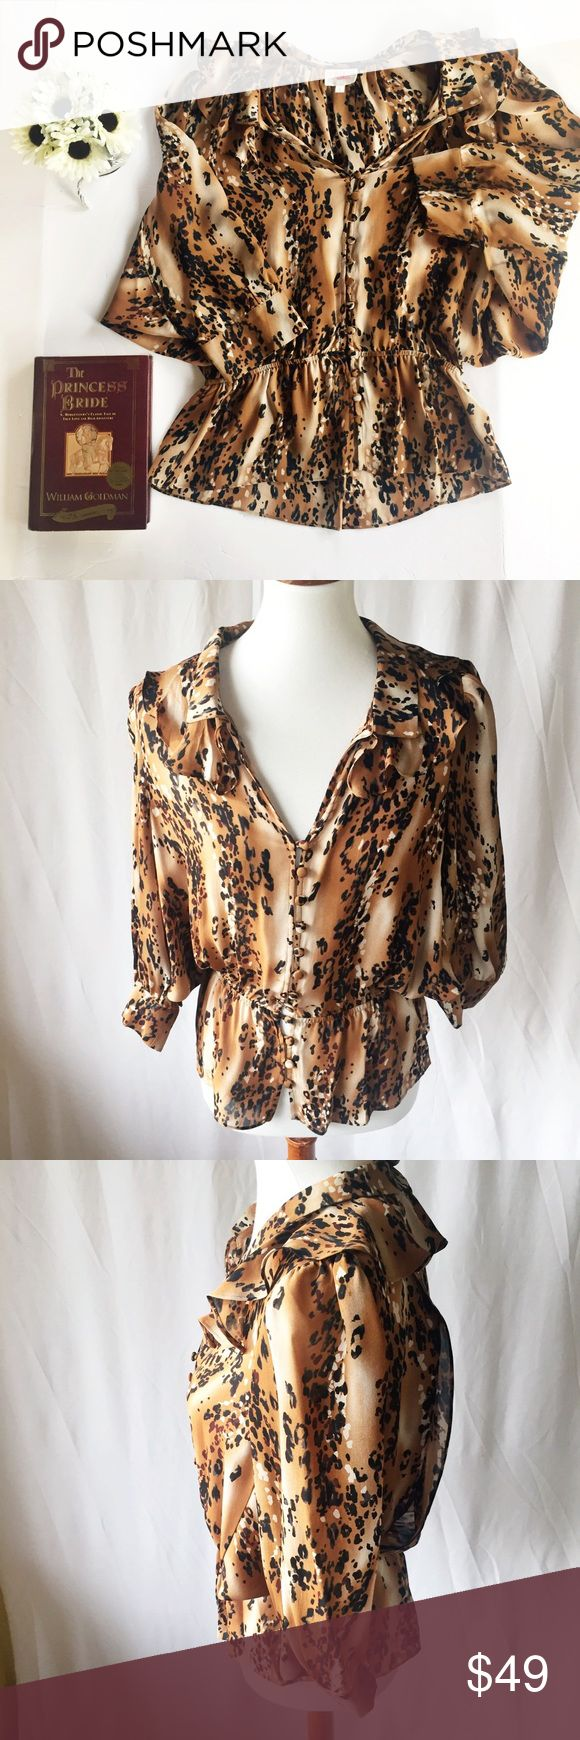 """Parker Animal Print Silk Ruffle Blouse Small Parker created this animal print blouse with silk ruffles. Buttons down the front with an elastic waist. Batwing sleeves. V-neck. Fun, flirty, and flattering.  Fabric: 100% Silk  Approximate measurements:   Size: Small Length: 23"""" Chest: 34""""  Condition: Excellent Used Condition (EUC) - no flaws, no signs of wear Parker Tops Blouses"""